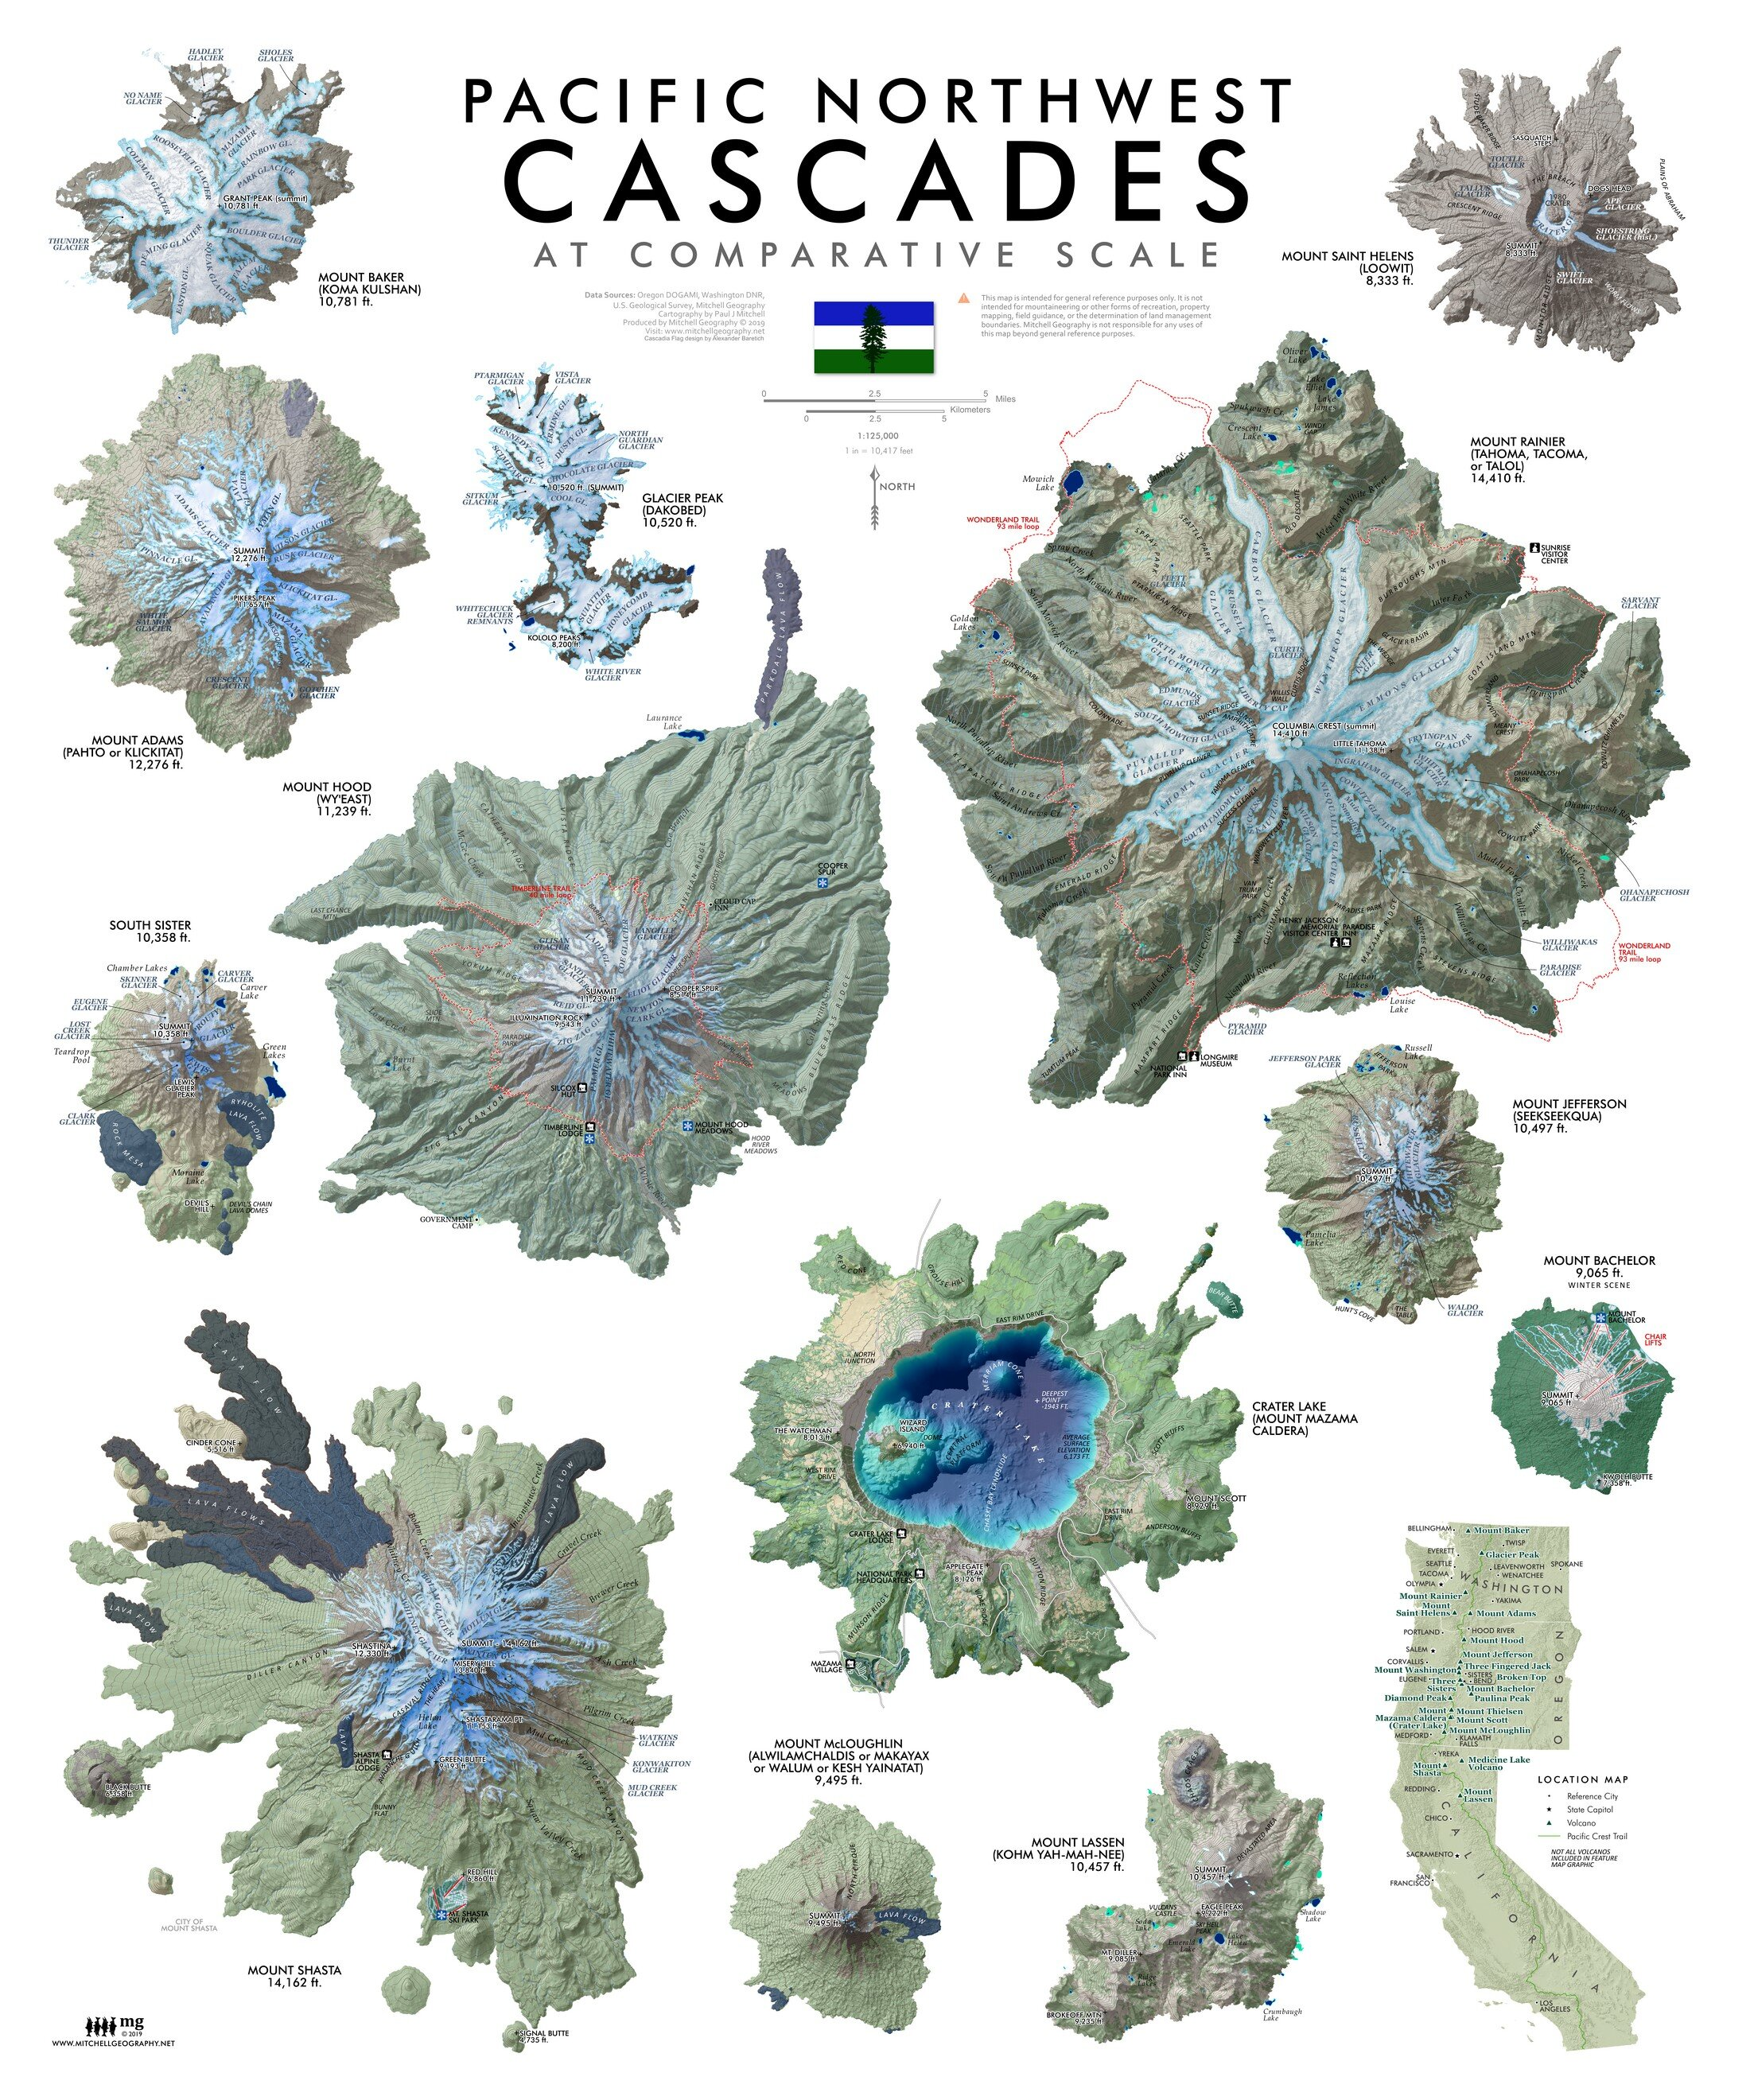 New Cascades 20 inches x 24 inches featuring the prominent Cascade peaks from Lassen in the south to Baker in the north… plus a nifty location map that includes the PCT centerline for reference.